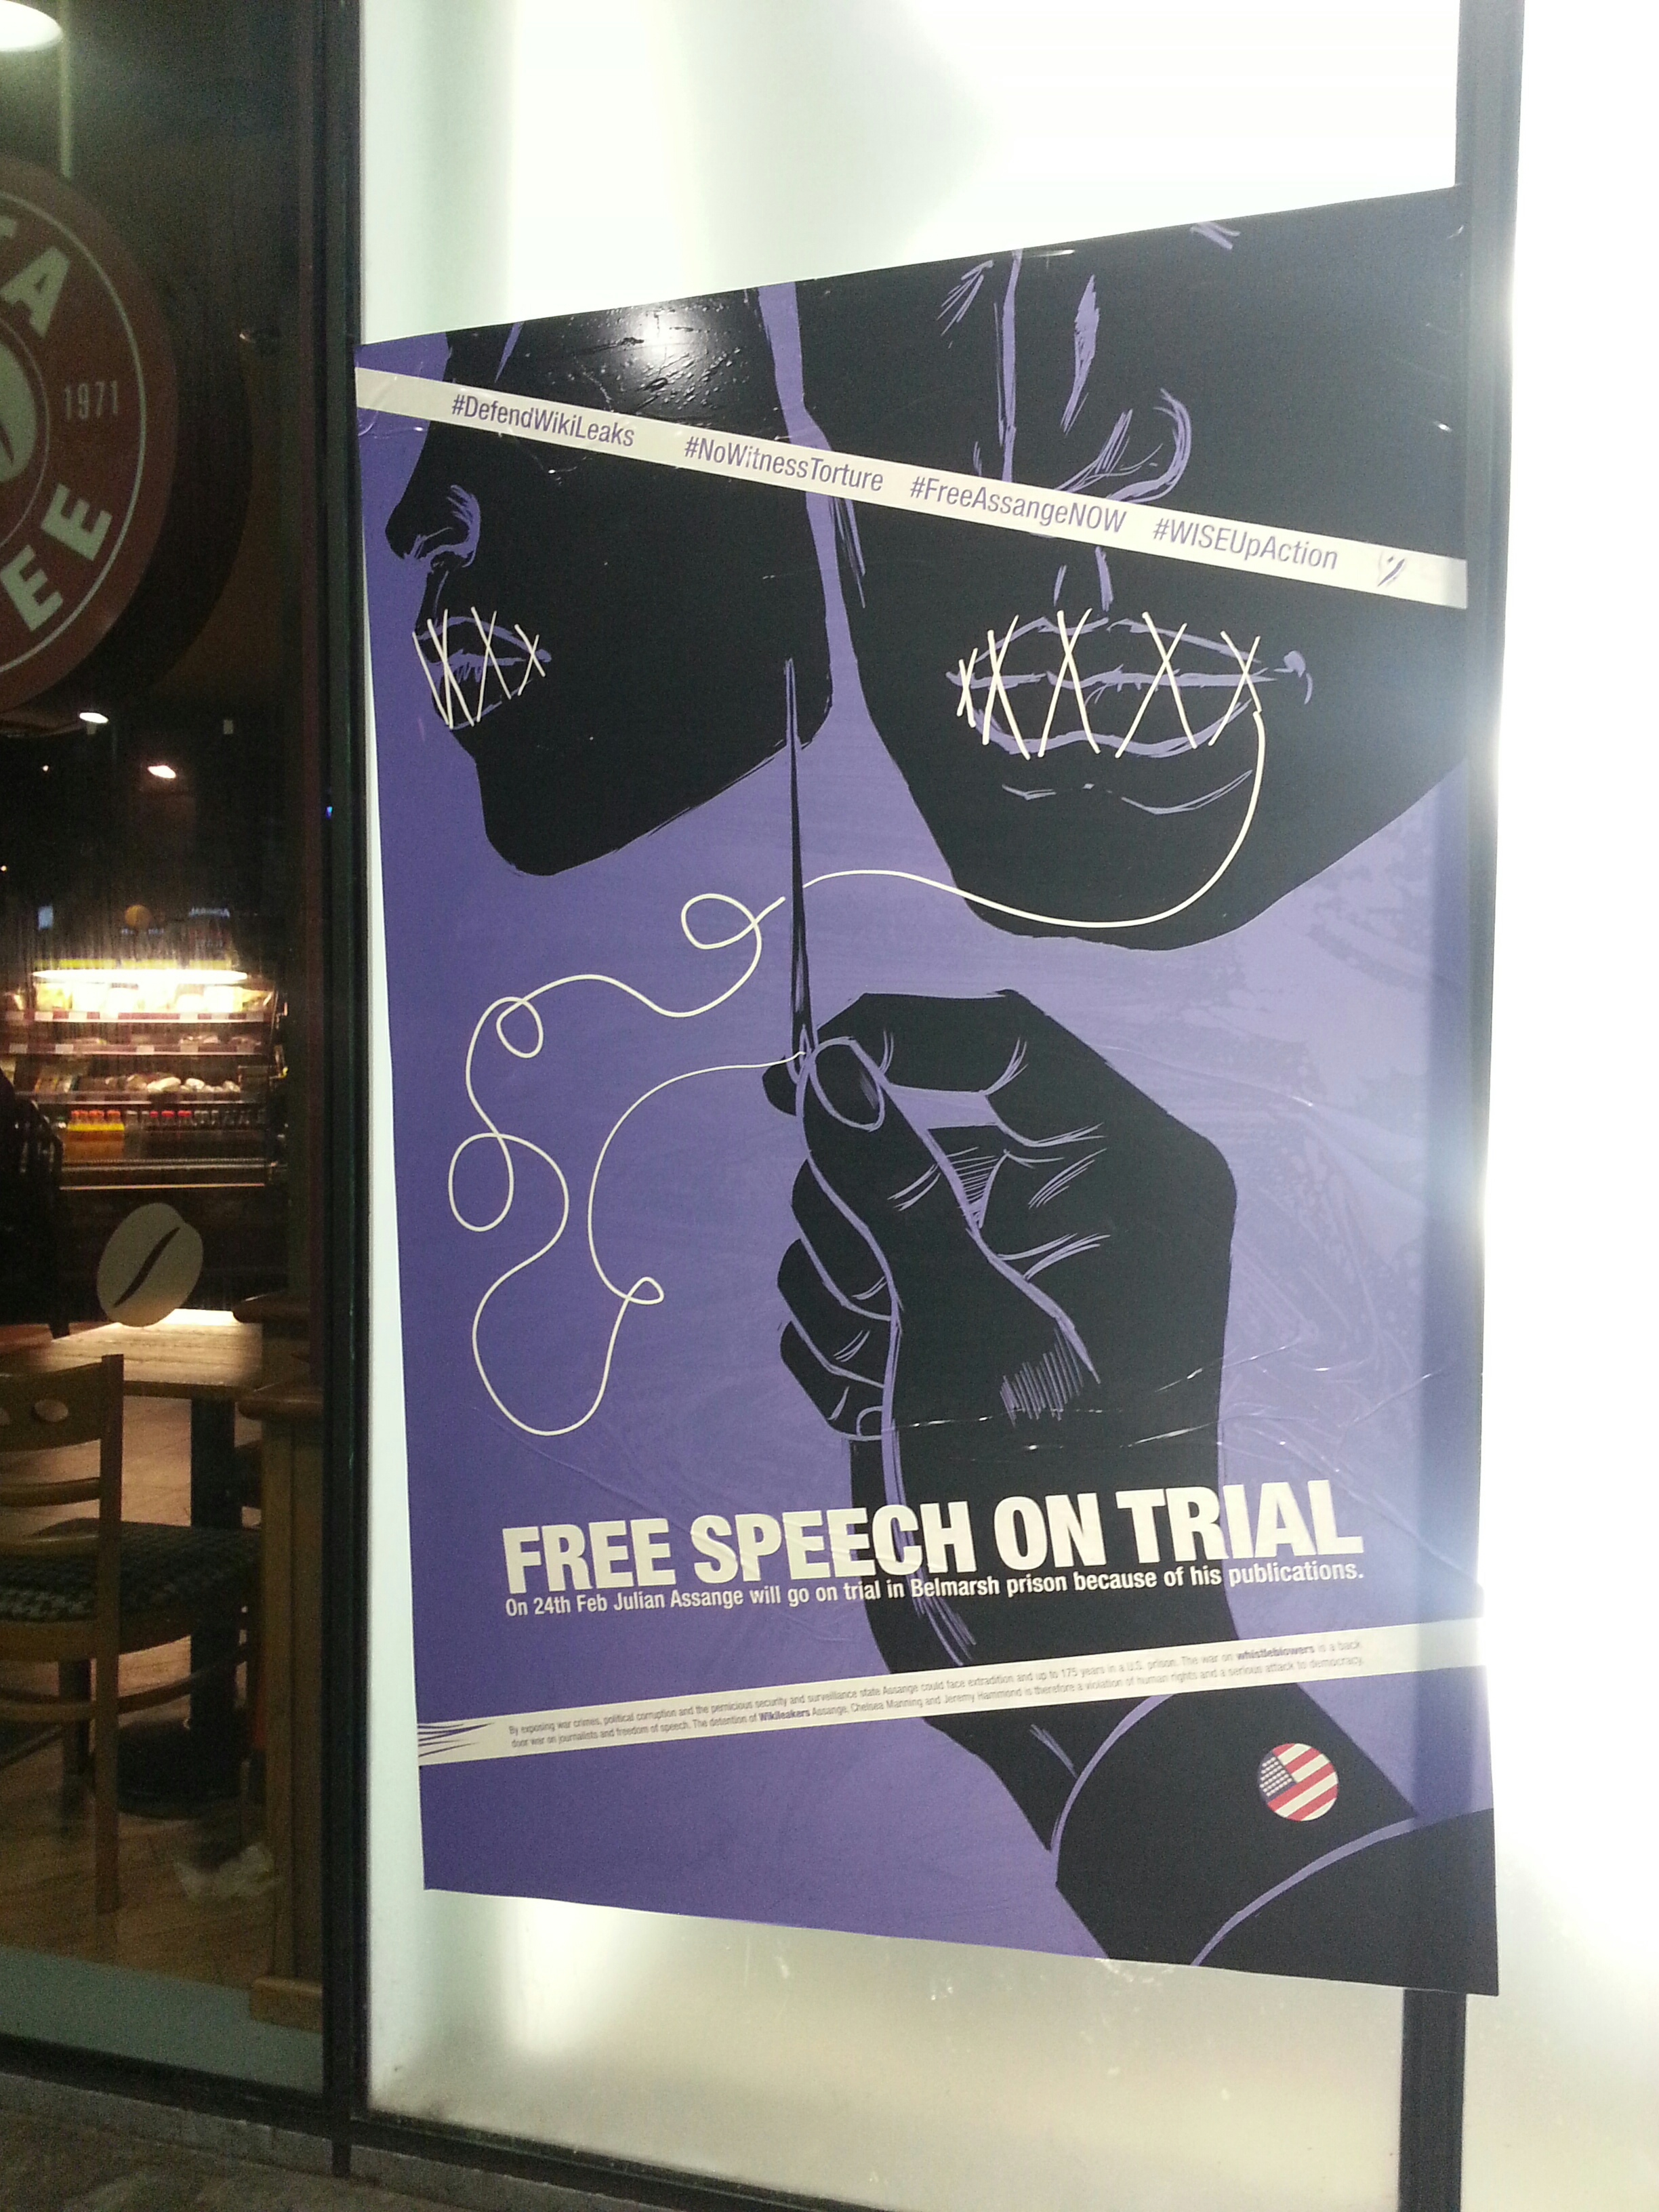 free_speech_on_trial_light_box.jpg